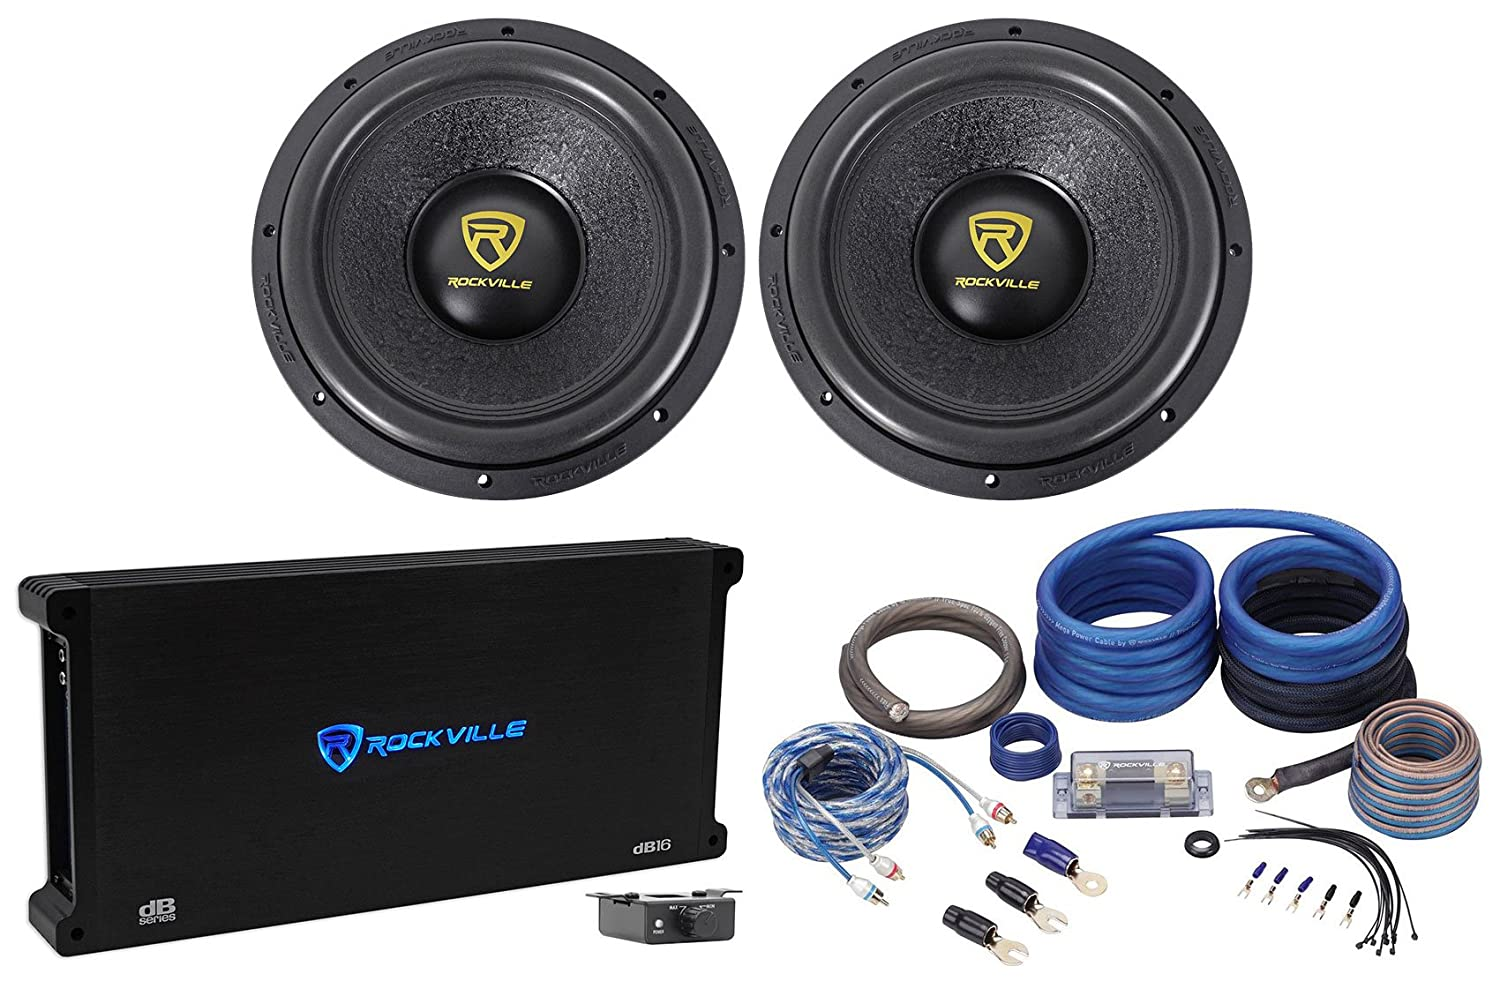 2 Rockville W12k9d2 12 8000 Watt Car Subwoofers Mono Single Dual Voice Coil Woofer With Ohm Coils Wired In Amplifier Copper Amp Kit Electronics